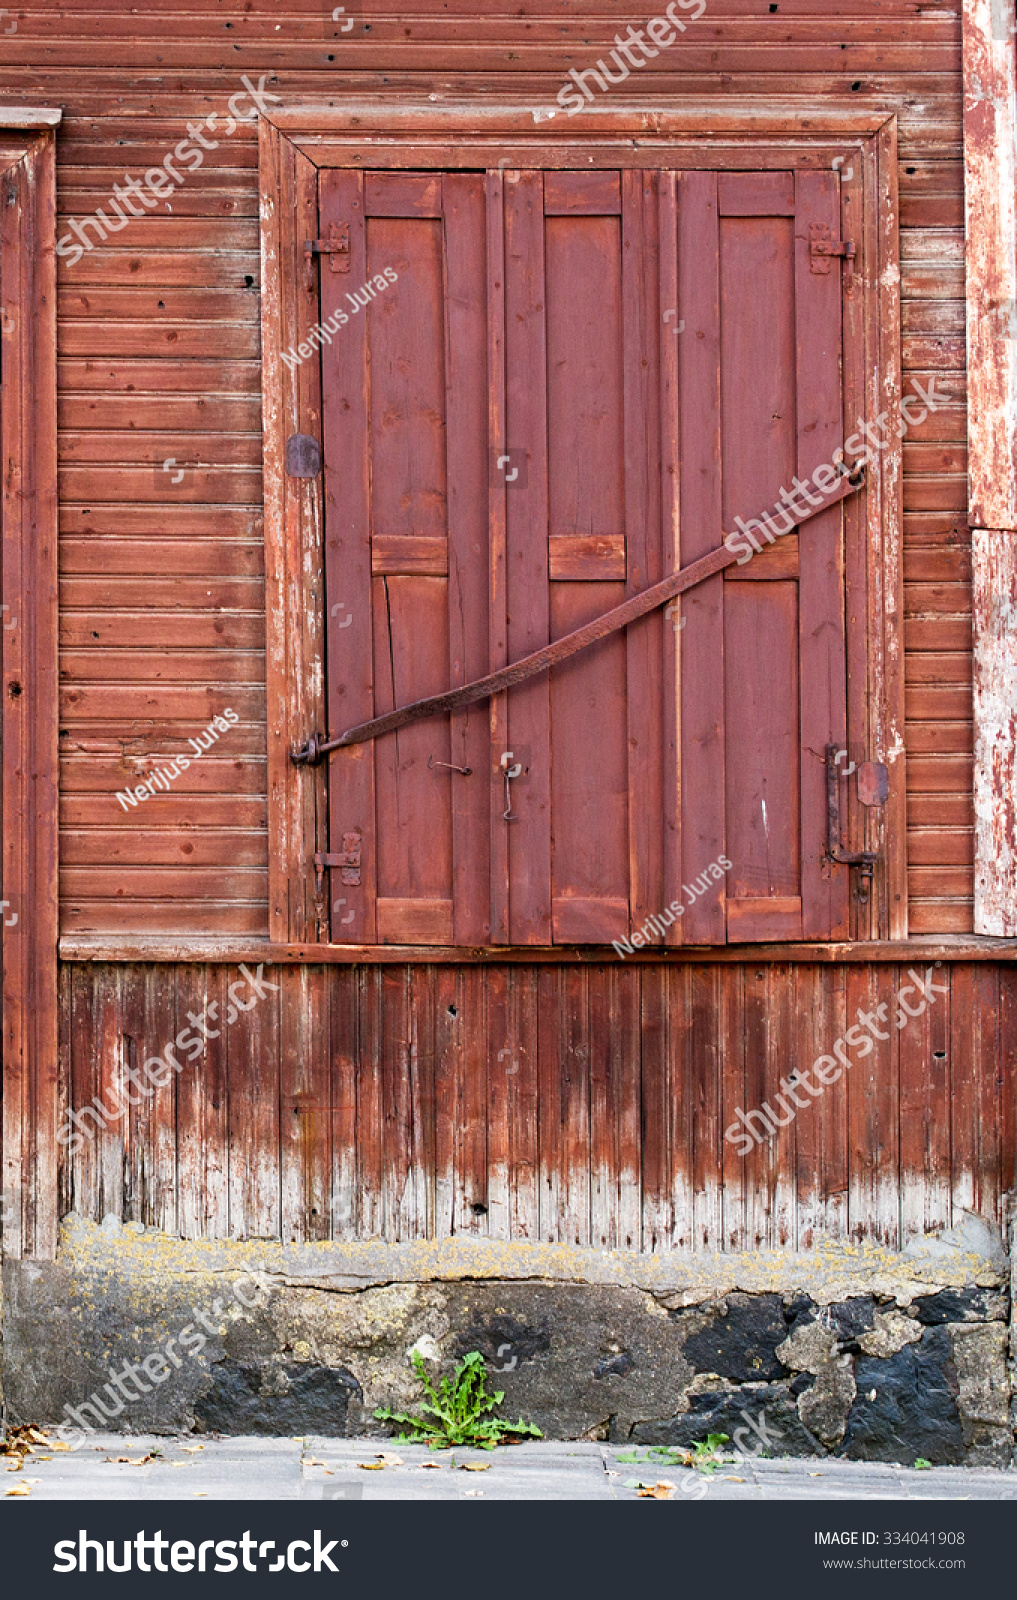 Wood Shutters Closed : Window closed shutters wooden plank wallbackground stock